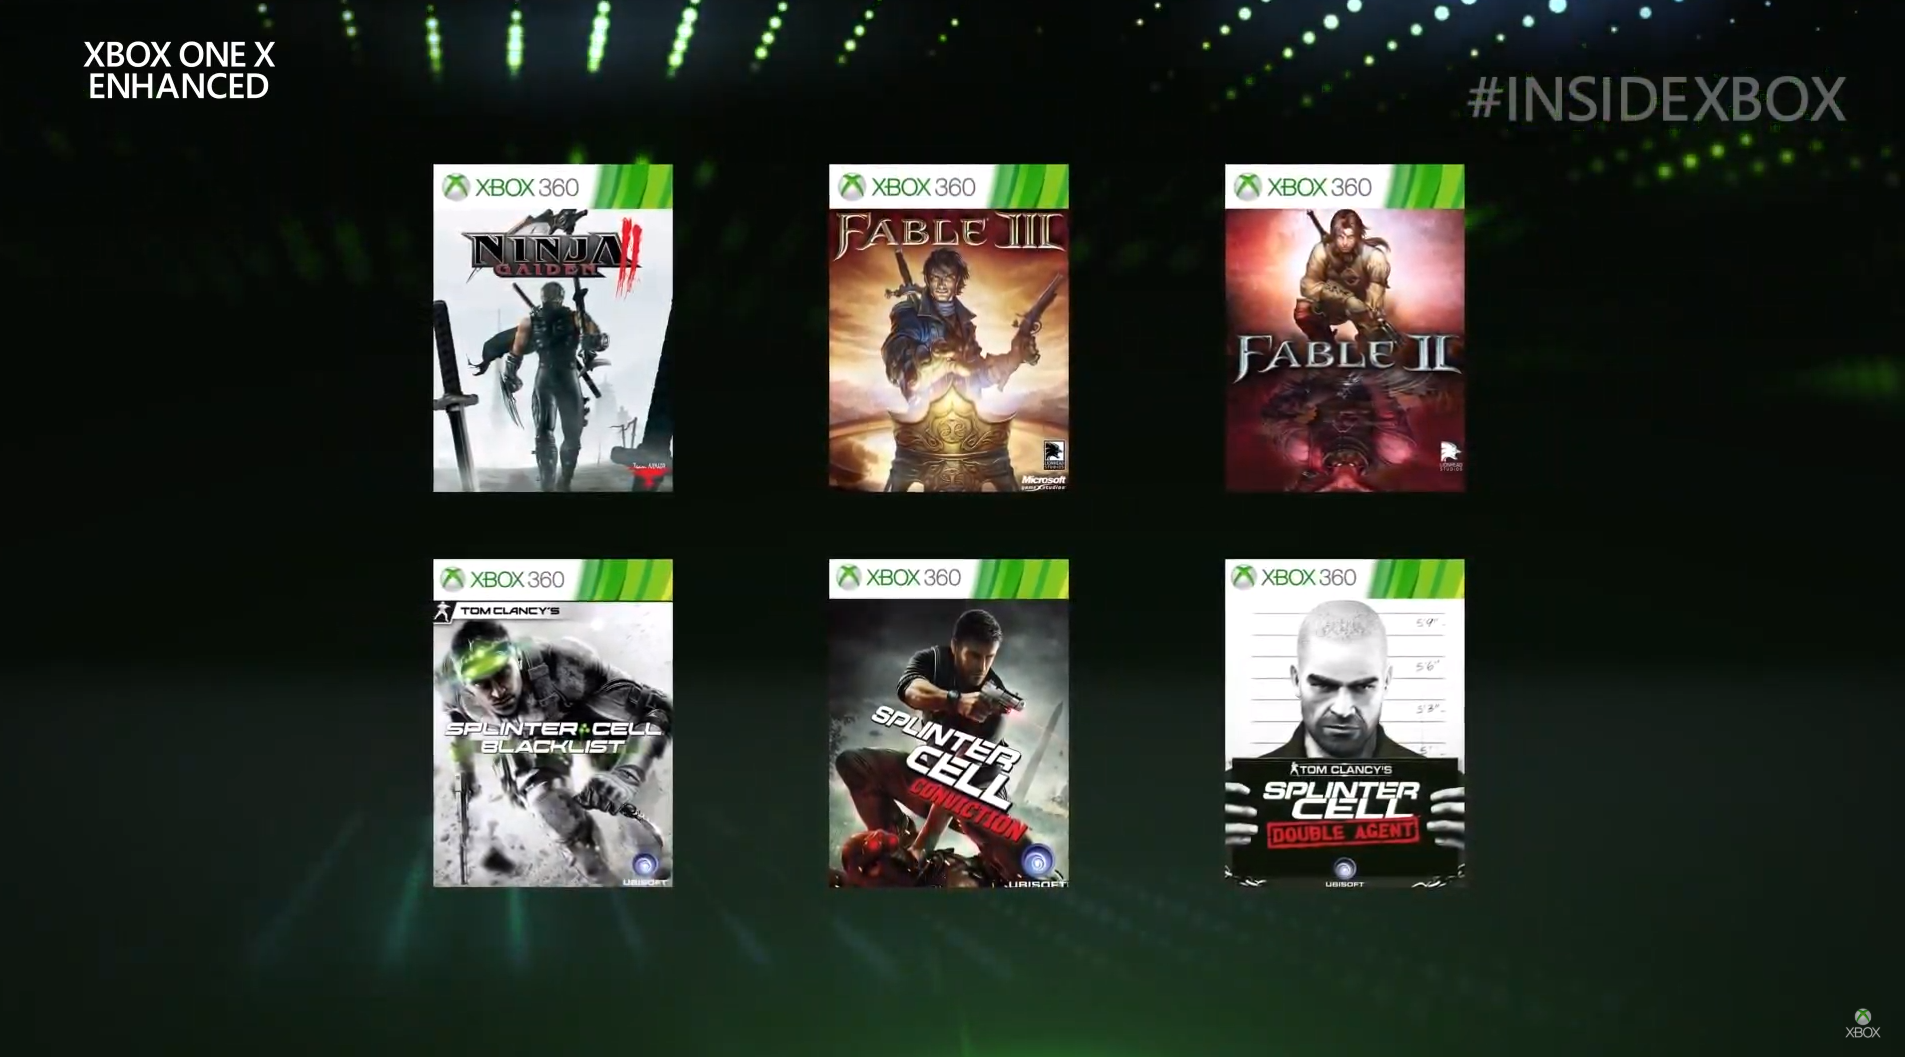 Fable & Splinter Cell games get Xbox One X Enhanced support